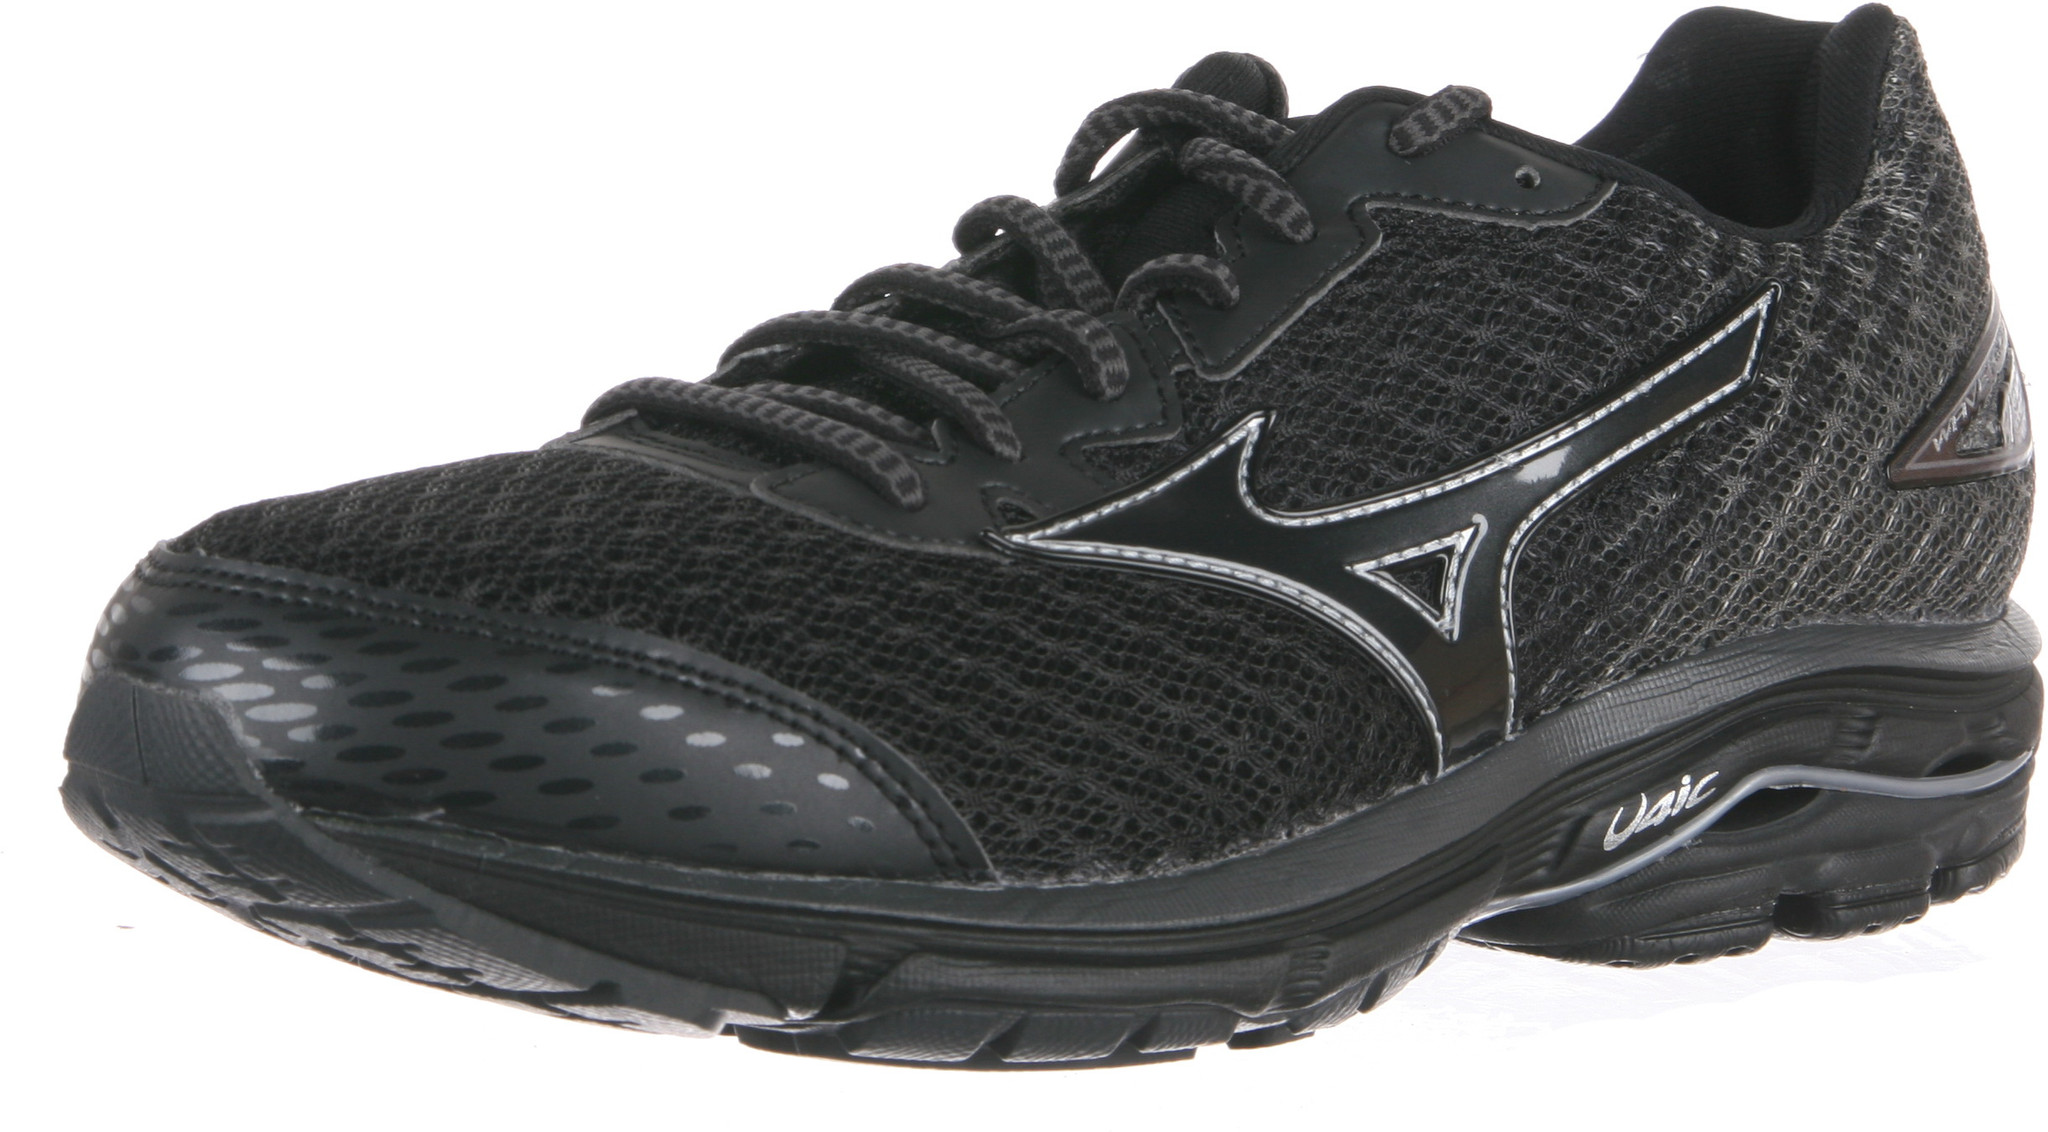 men 39 s mizuno wave rider 19 running shoe ebay. Black Bedroom Furniture Sets. Home Design Ideas